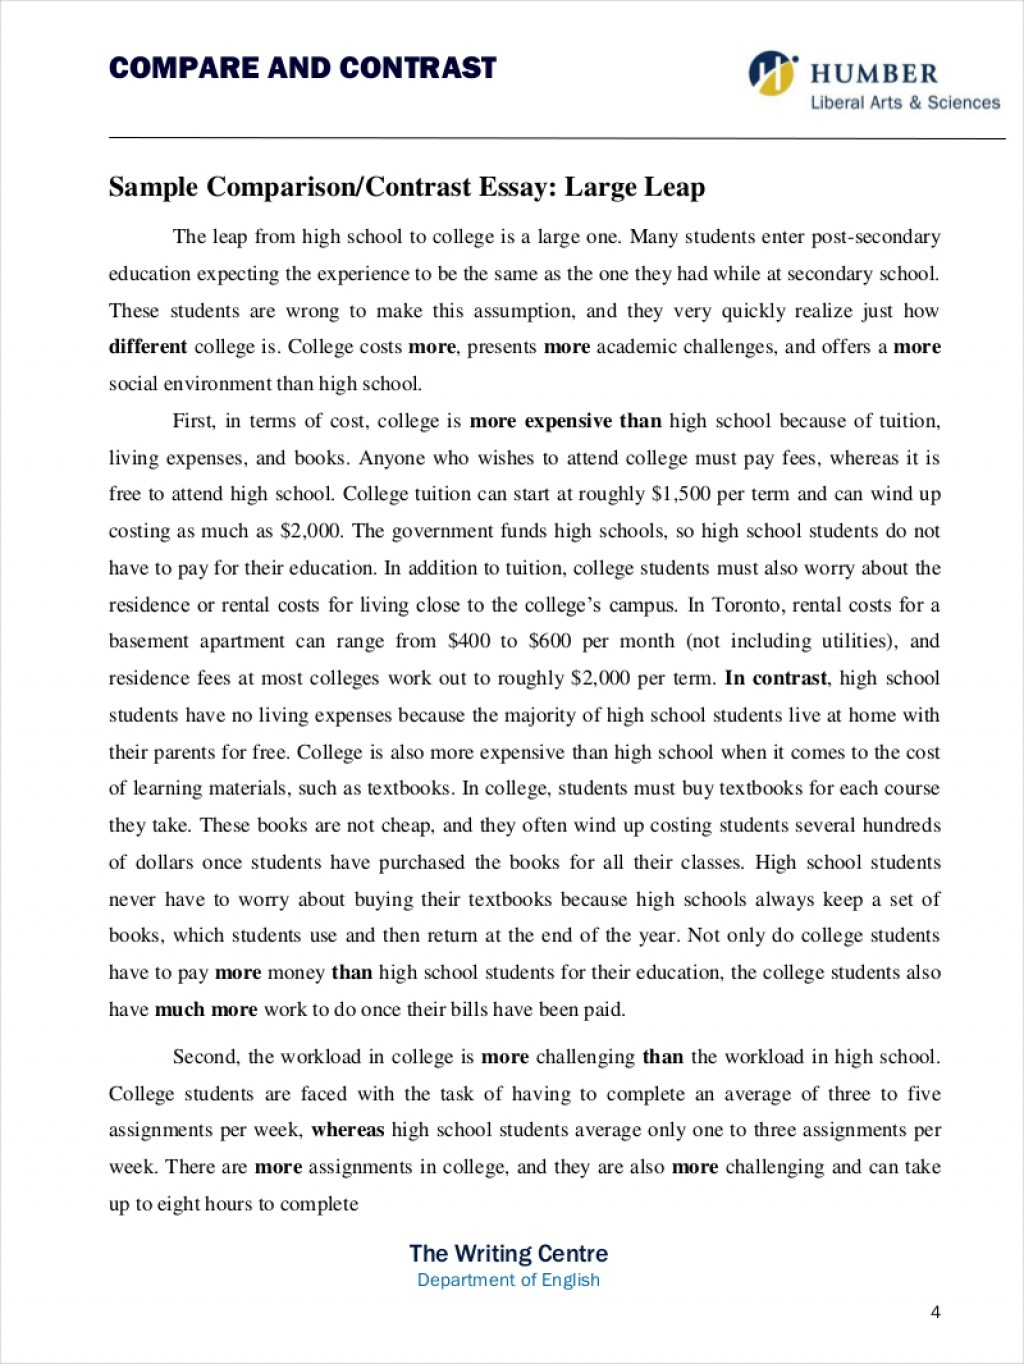 001 Free Essays For School Students Essay Example Comparative Samples Pdf Format Download Throughout Compare Contrast Examples Comparison Thesis Coles Thecolossus Co Within Ex 5th Grade Striking Scholarships High Writing Prompts Large